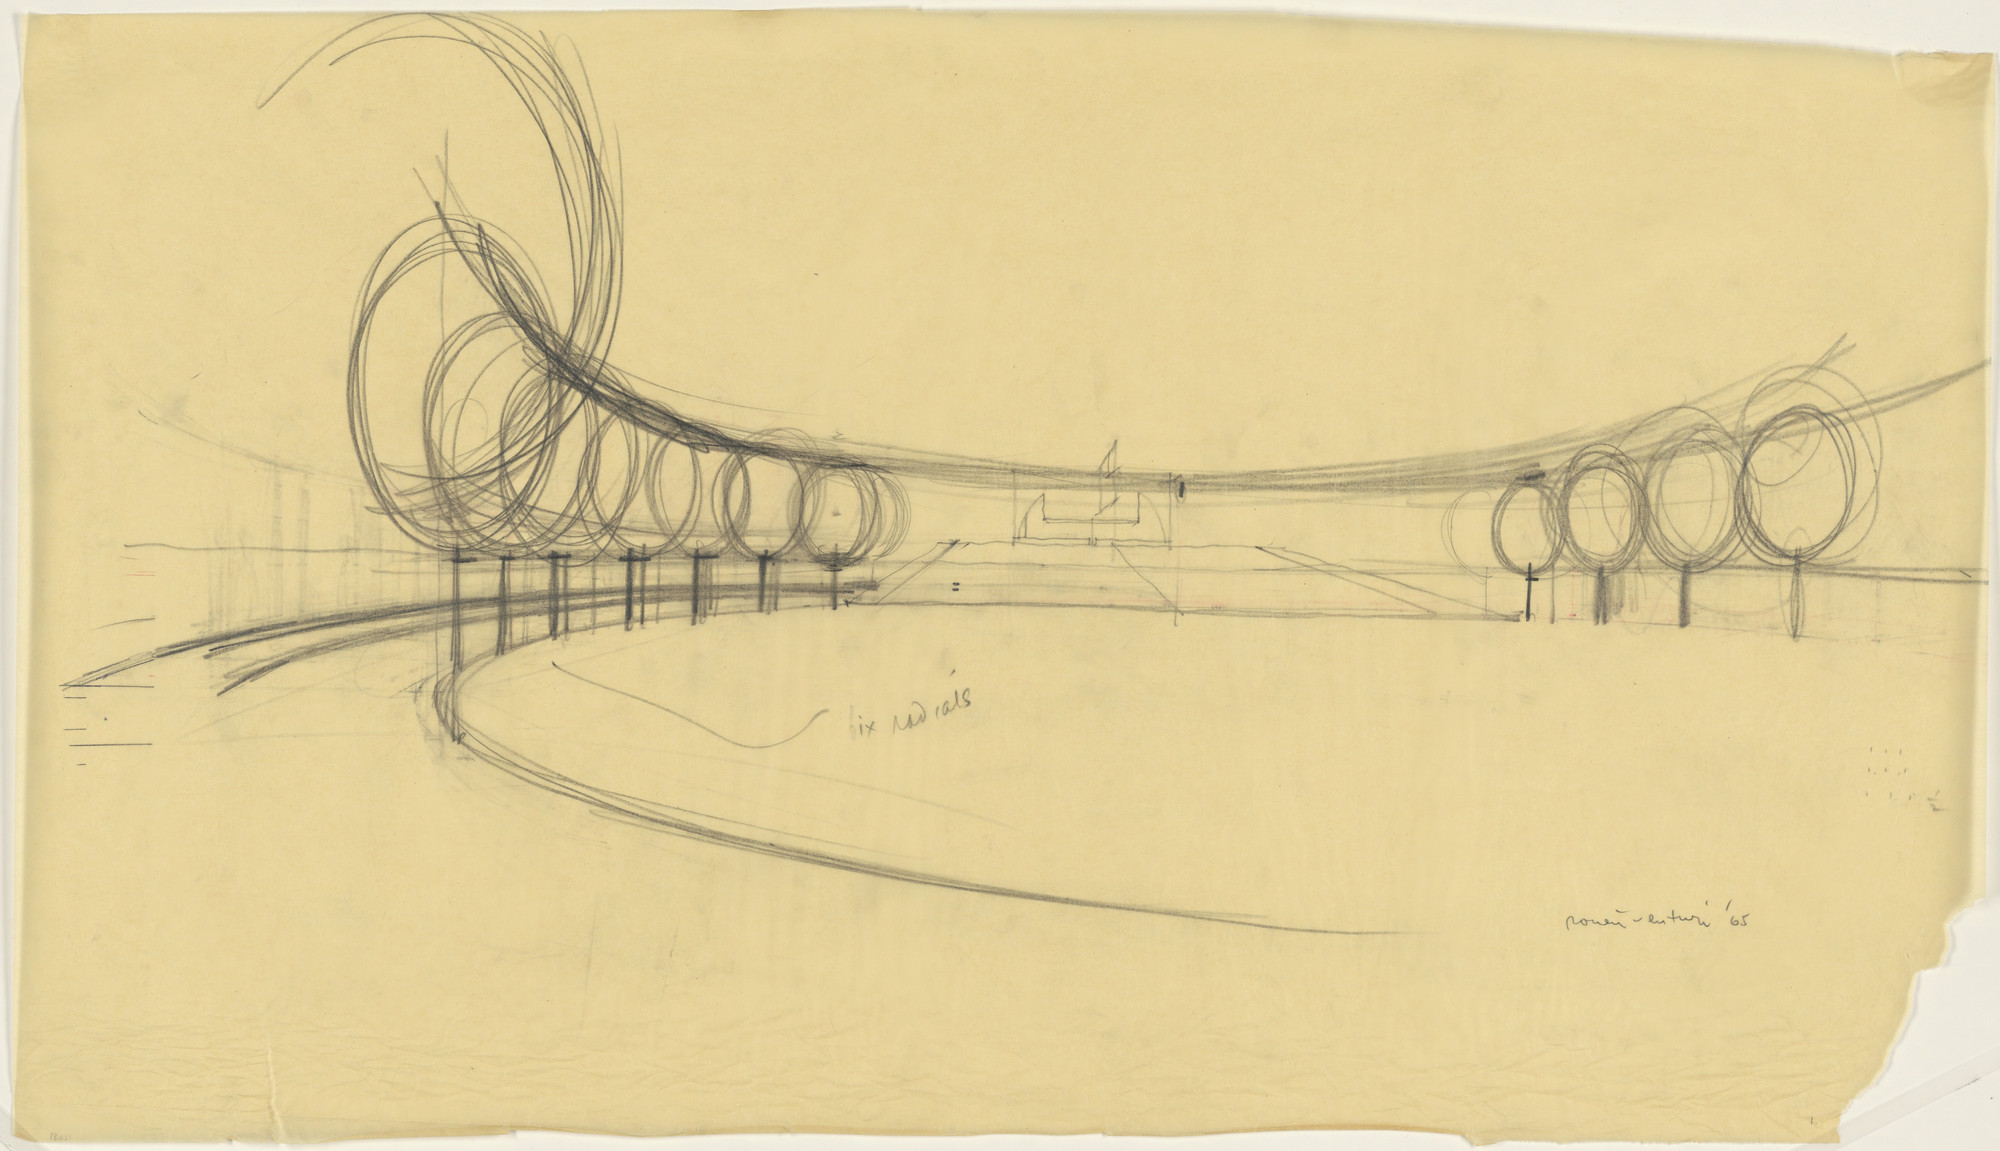 Venturi and Rauch, Robert Venturi, John Rauch. City Hall, project, North Canton, Ohio, Perspective sketch. 1965